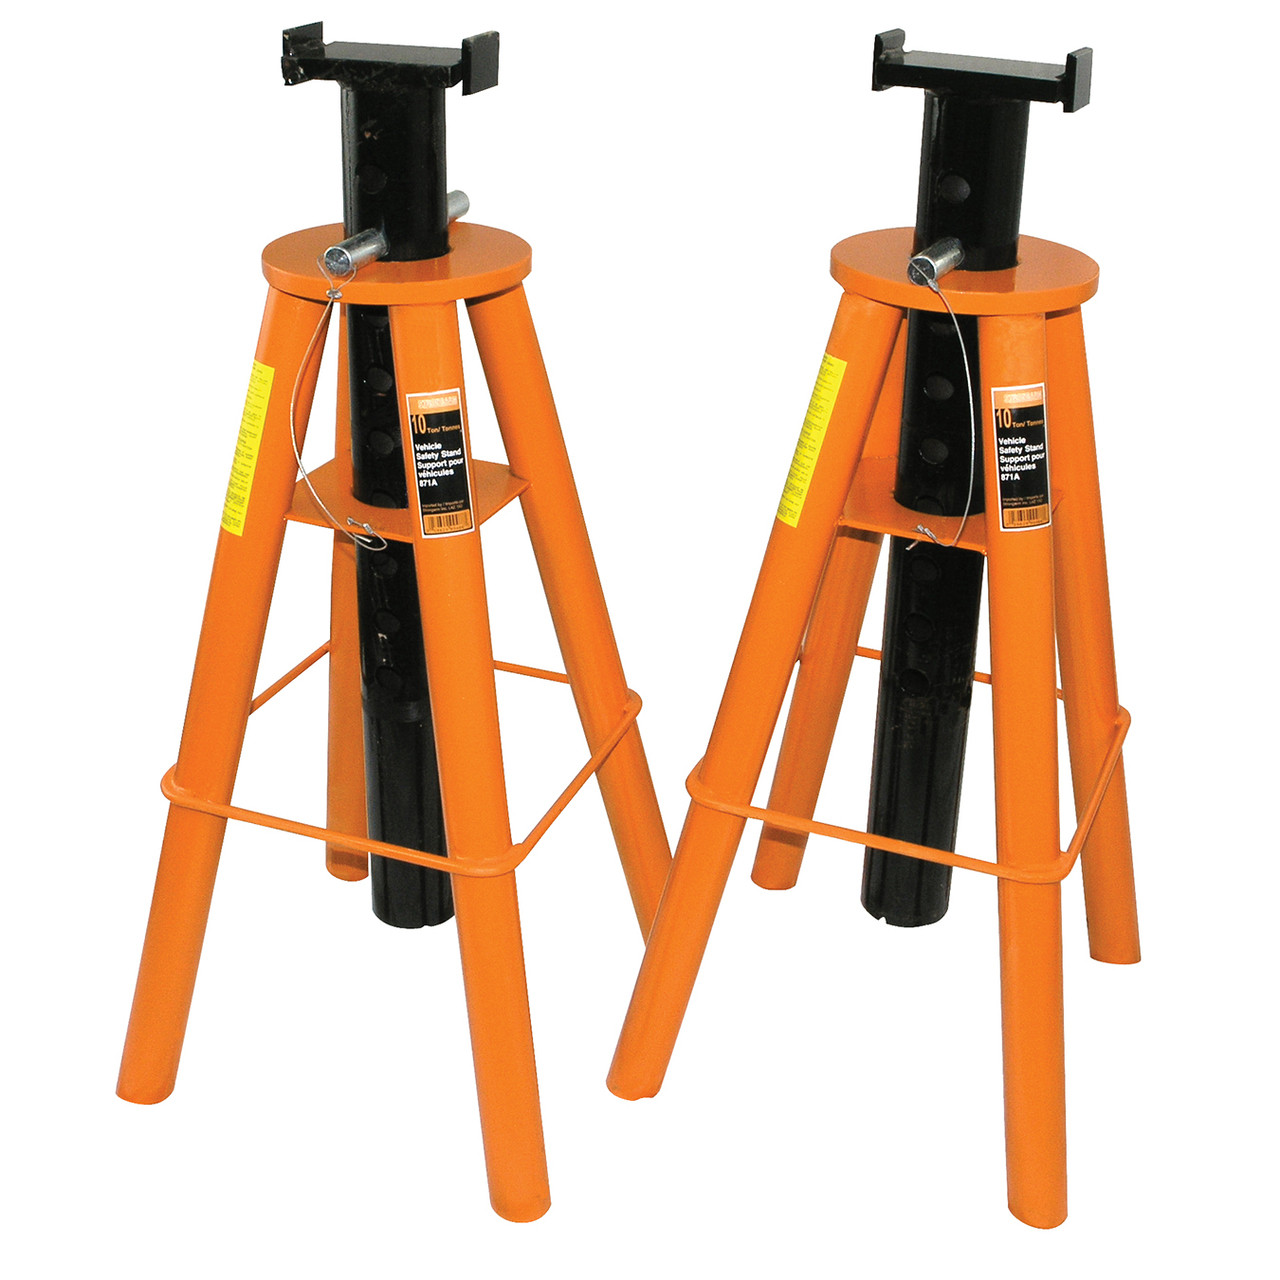 1 Pair Red Adjustable Height Stark 10-Ton Pin Type Jack Stands High Height 20,000 lb Weight Capacity